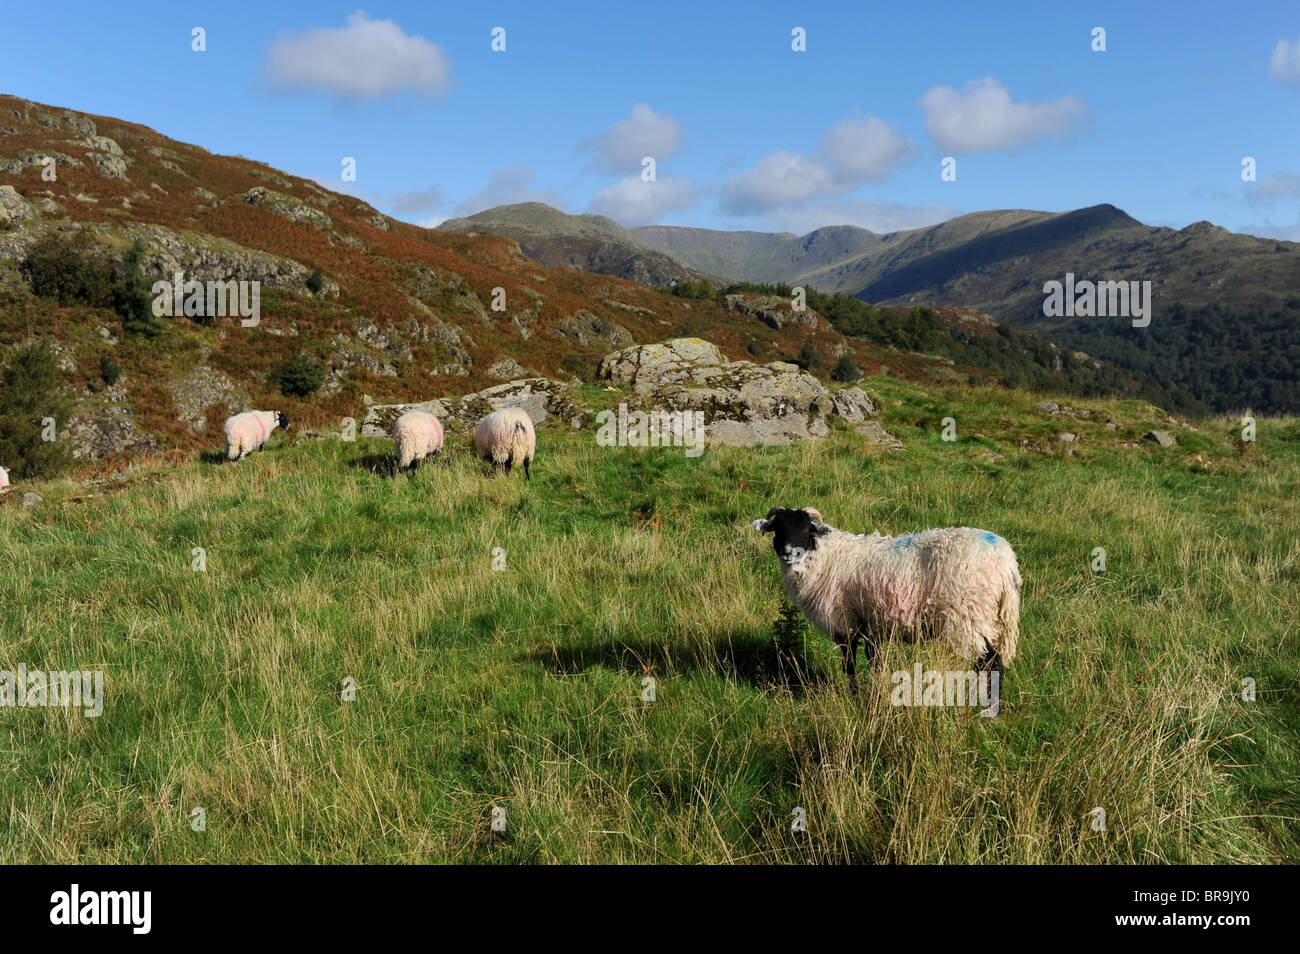 Sheep grazing at Loughrigg Fell near the Lake District village of Ambleside Cumbria UK - Stock Image